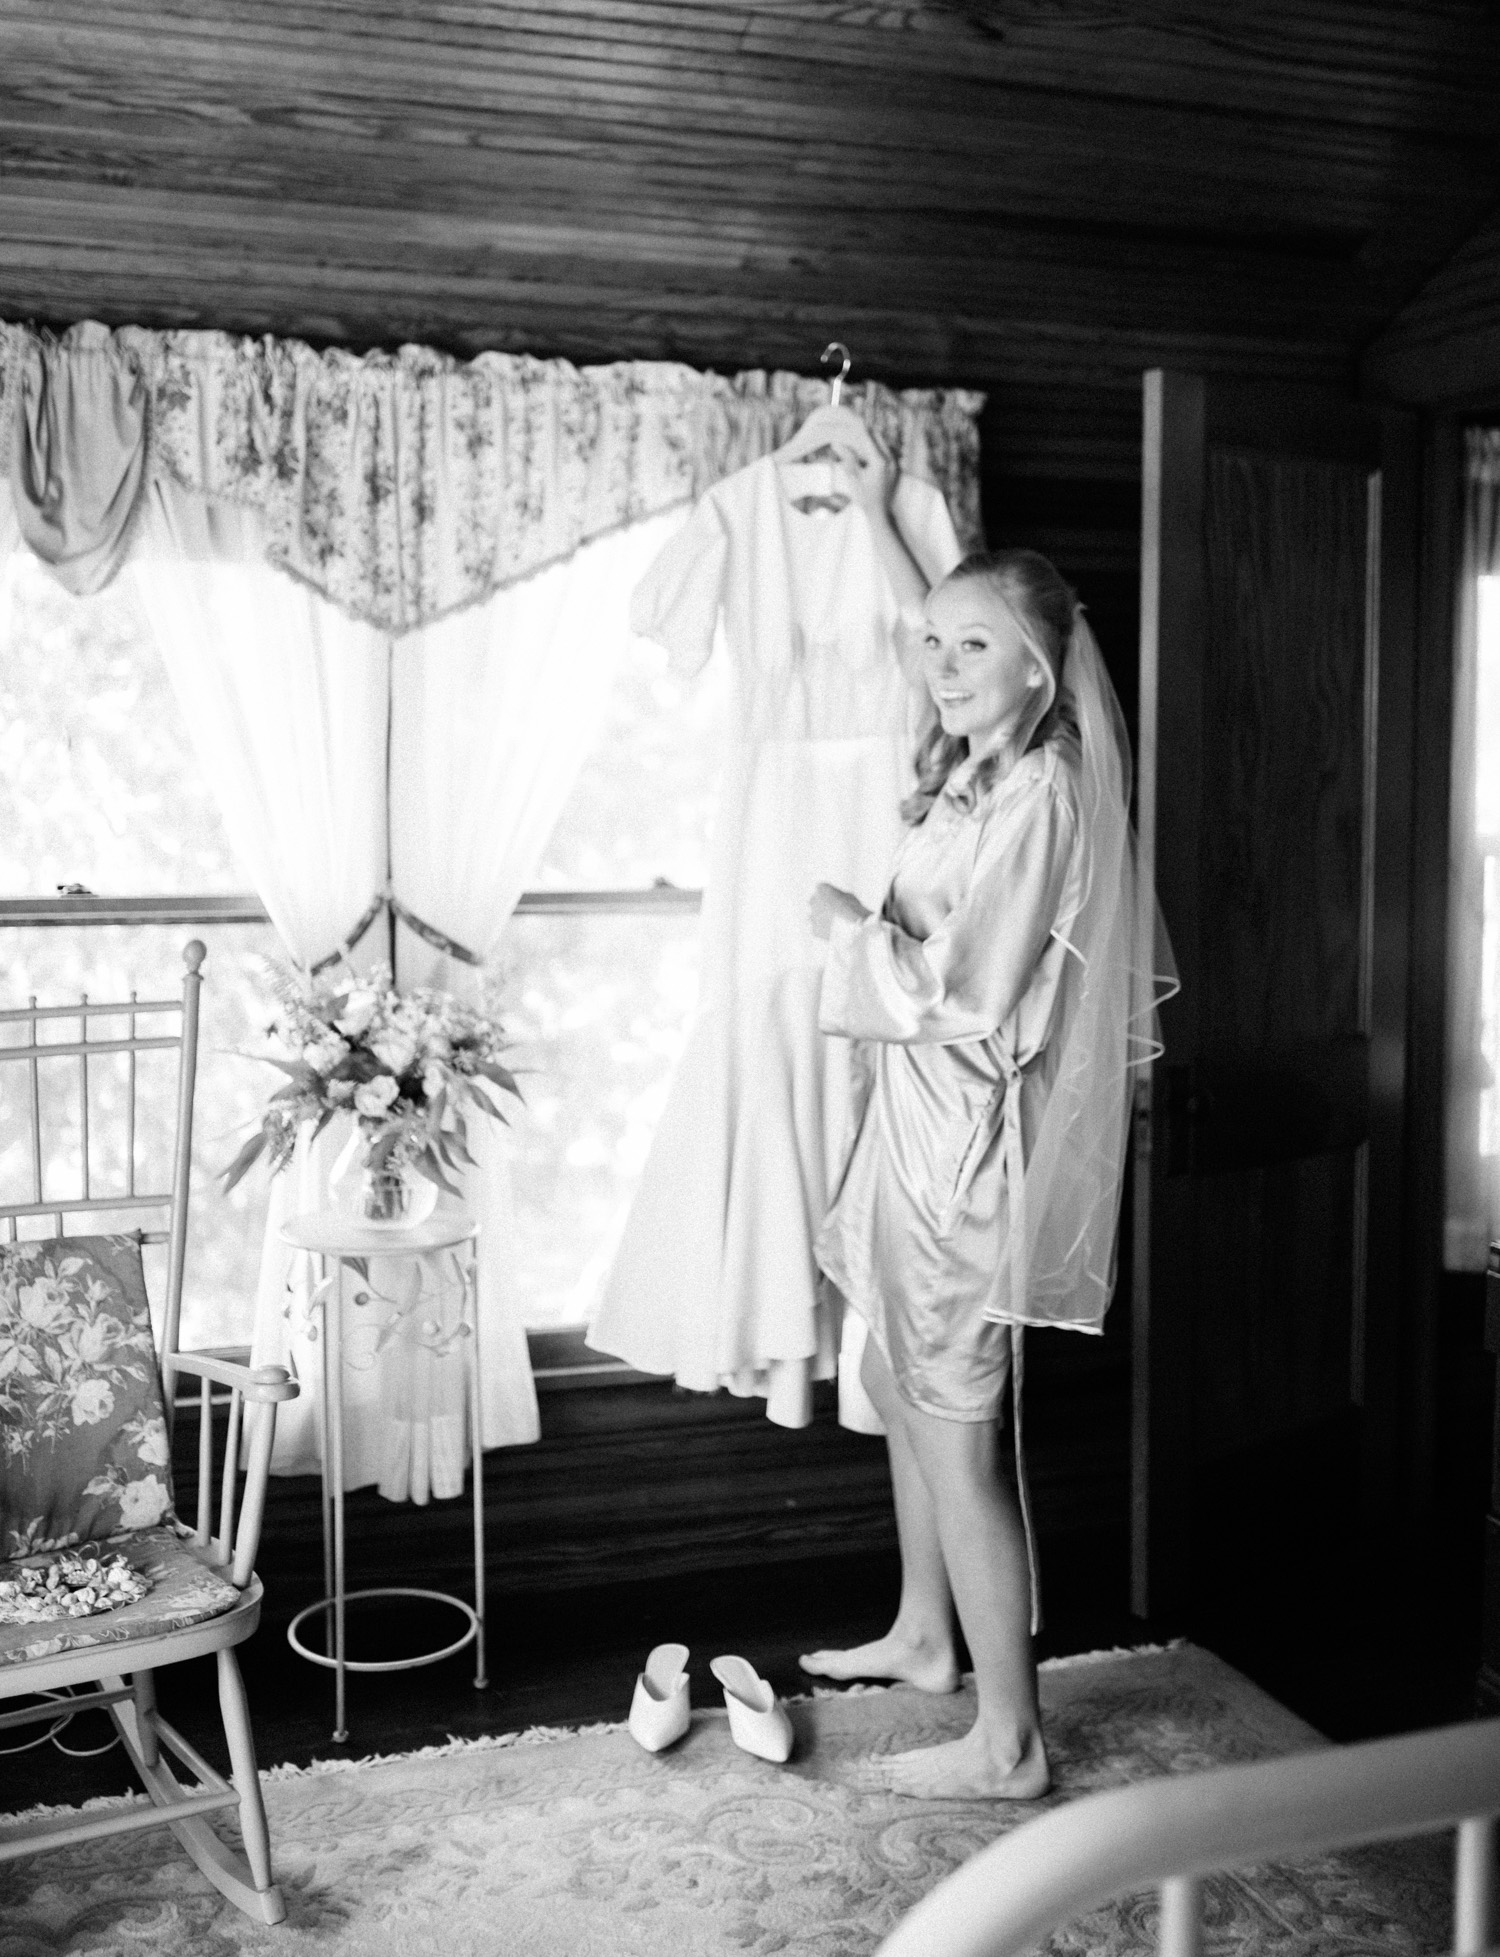 a smiling bride in a silk robe takes her gown off the hanger while preparing for her Northern Michigan wedding